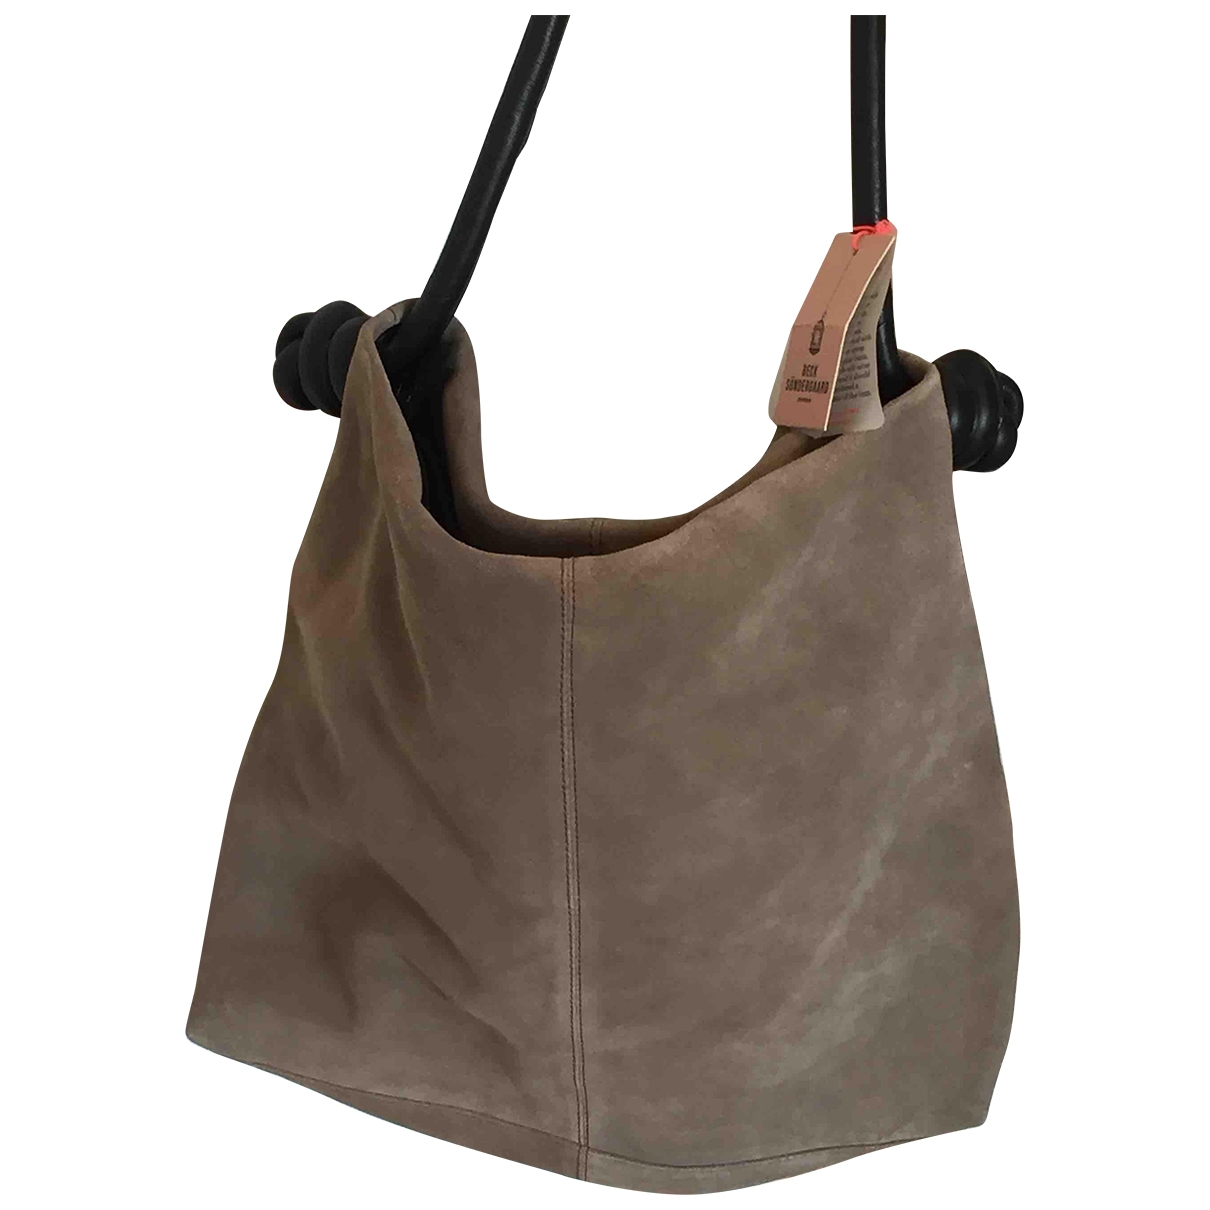 Beck Sonder Gaard \N Beige Suede handbag for Women \N